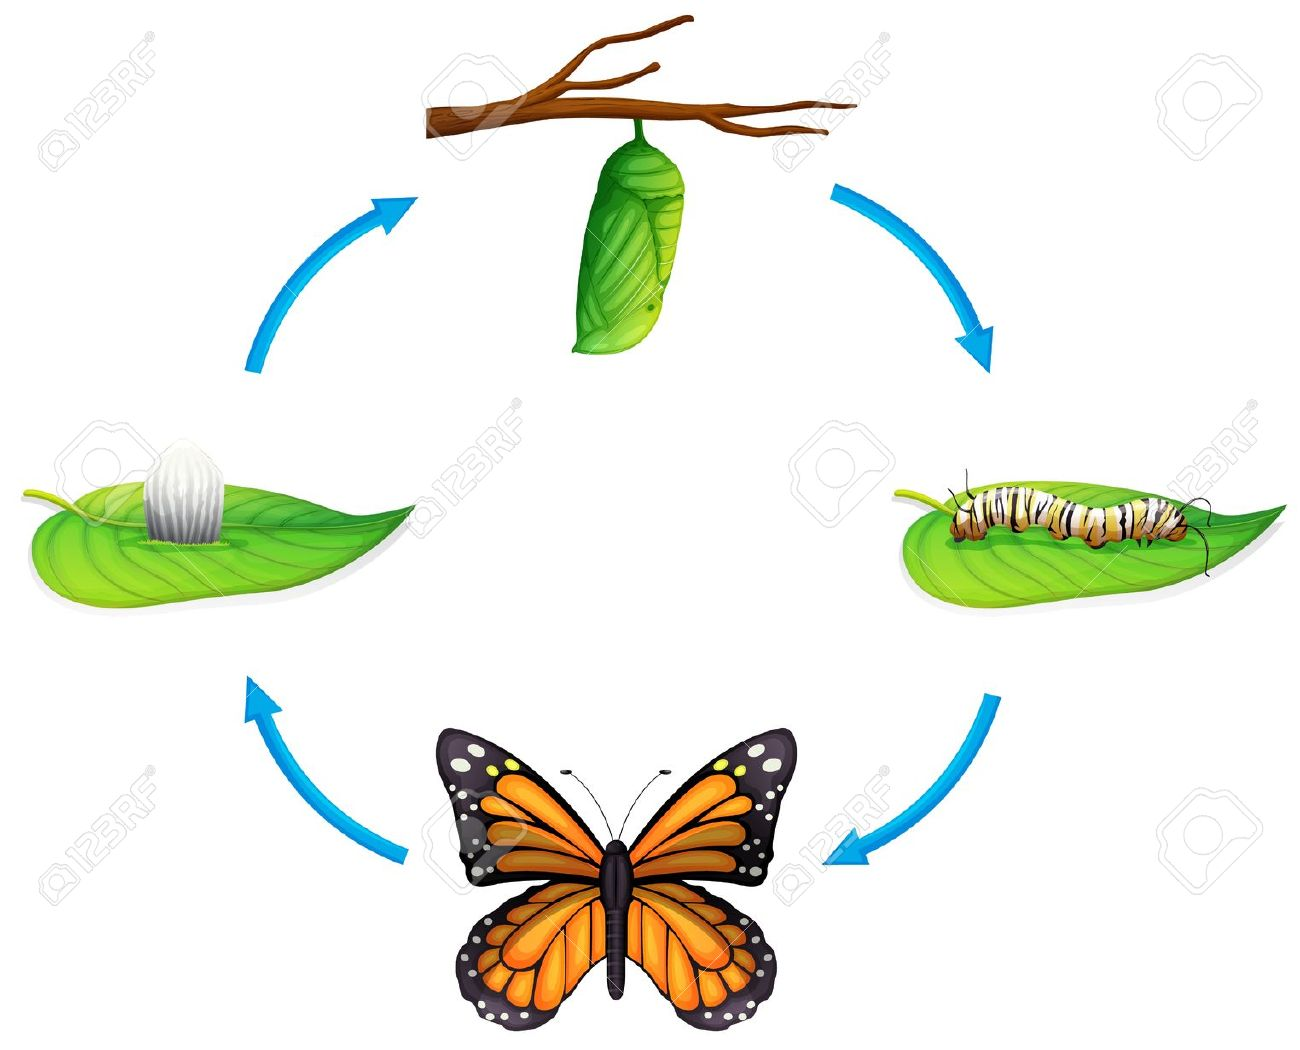 Butterfly life cycle clipart svg freeuse library 90 Butterfly Life Cycle Cliparts, Stock Vector And Royalty Free ... svg freeuse library